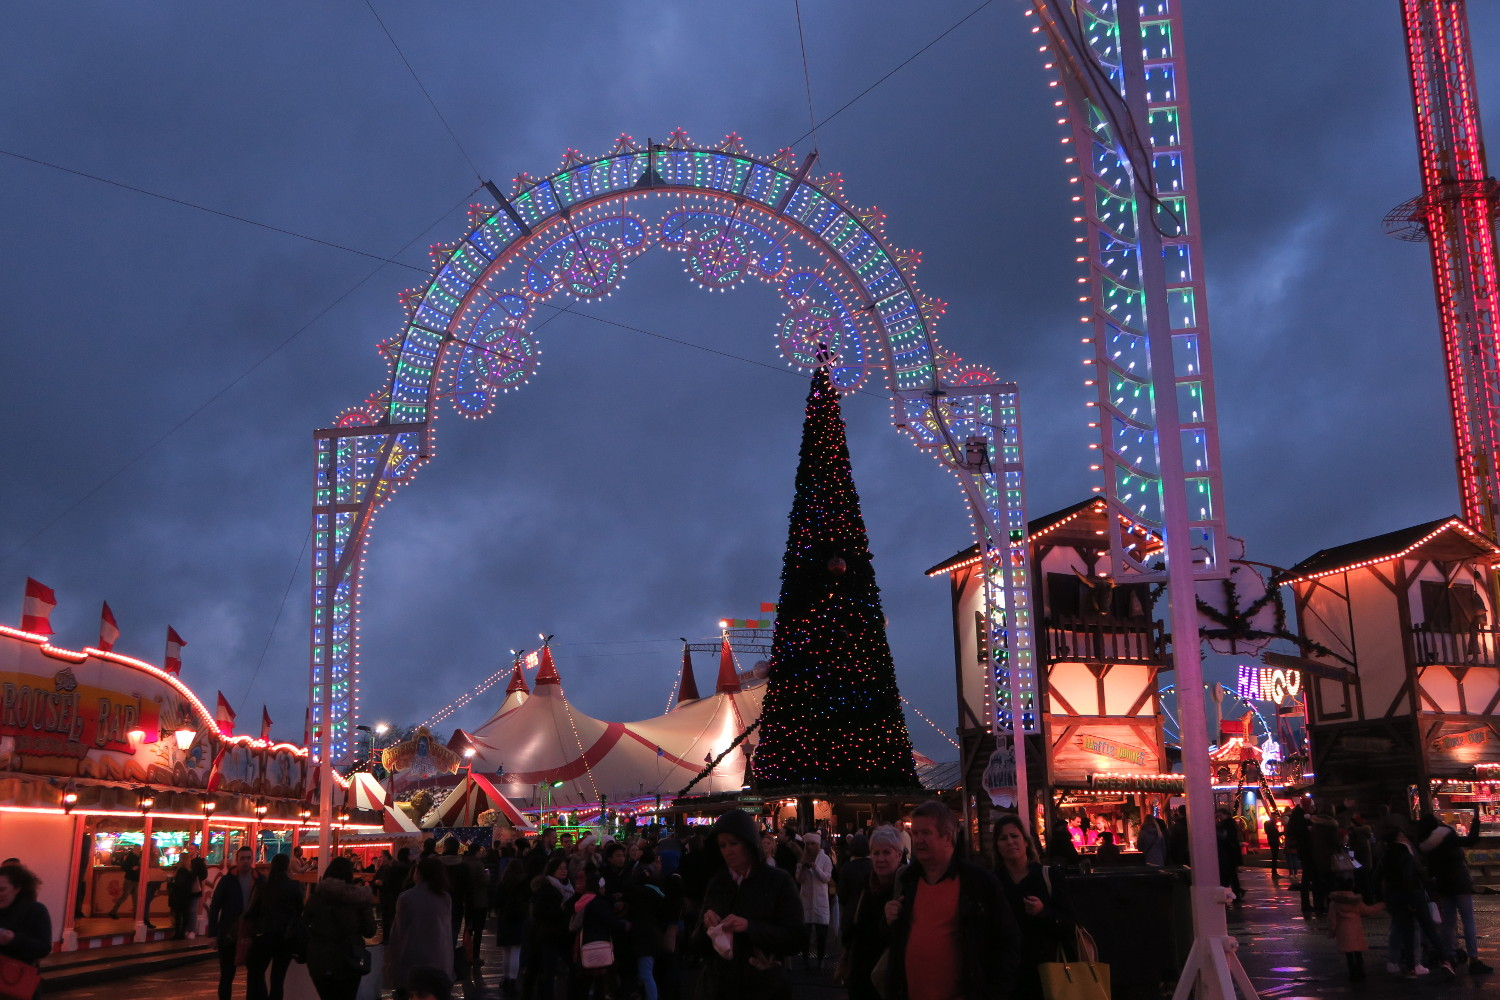 The Winter Wonderland Christmas Market in London, UK is one of the best Christmas Markets in Europe. Read the article to discover the best Christmas markets in Europe #christmas #christmasholidays #christmastrips #europemarkets #europechristmasmarkets #christmasmarkets